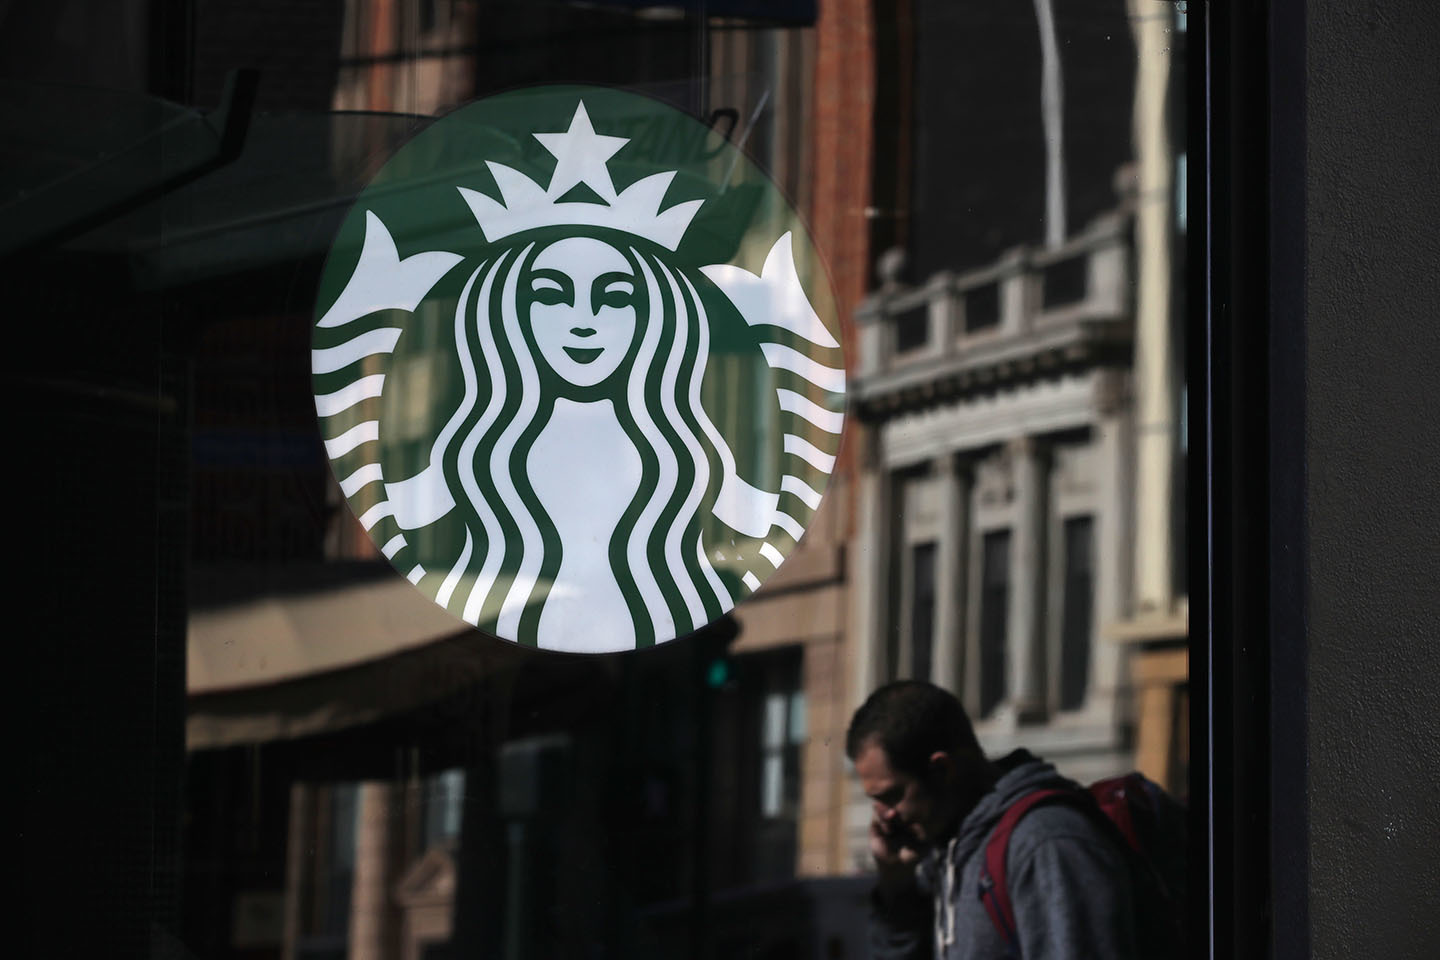 Starbucks Released a Secret Fall Menu—Here's How to Make the Drinks Healthier